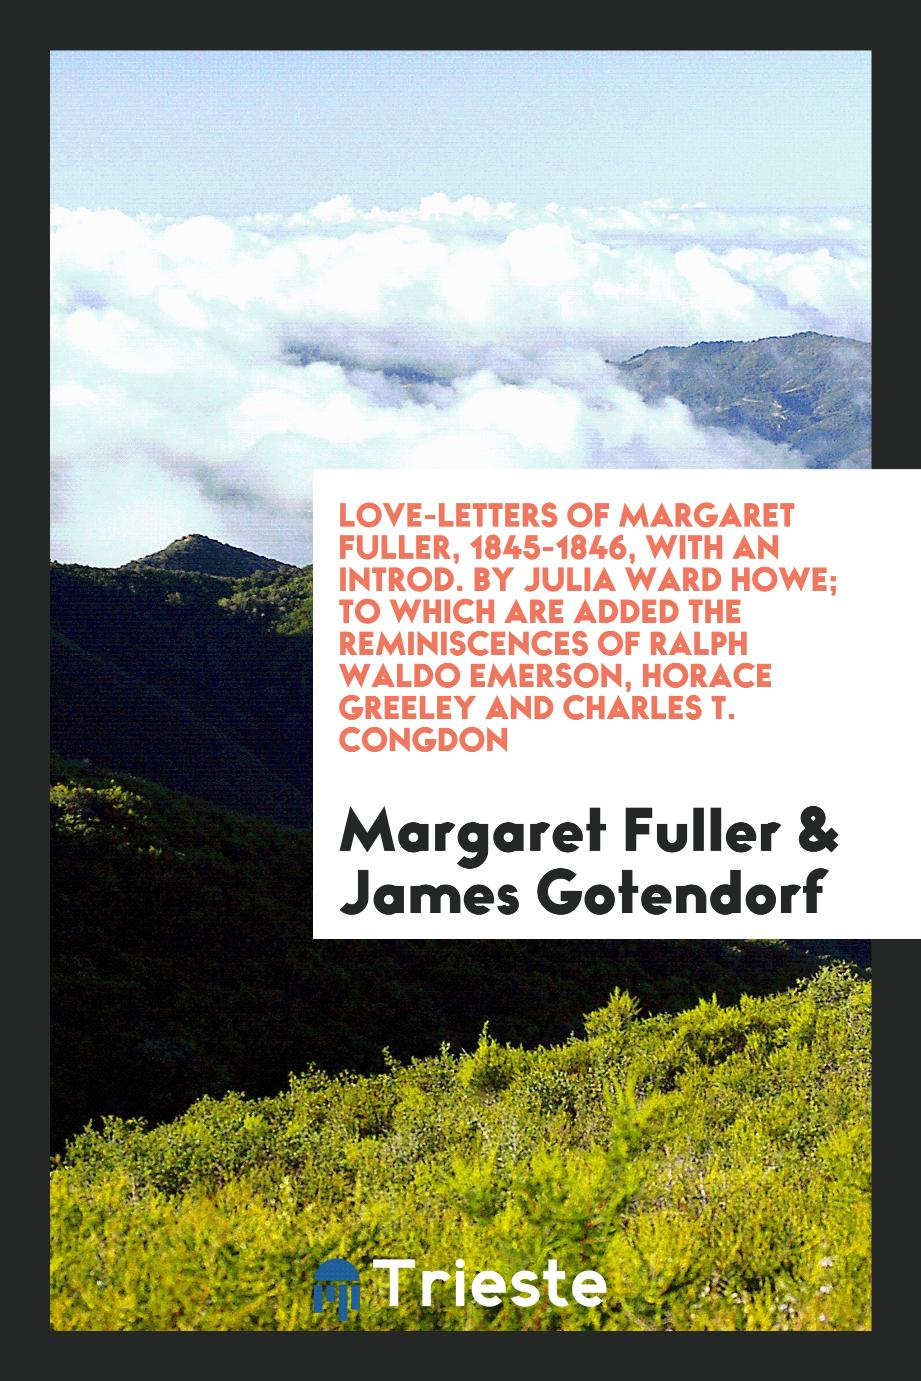 Love-letters of Margaret Fuller, 1845-1846, with an introd. by Julia Ward Howe; to which are added the reminiscences of Ralph Waldo Emerson, Horace Greeley and Charles T. Congdon